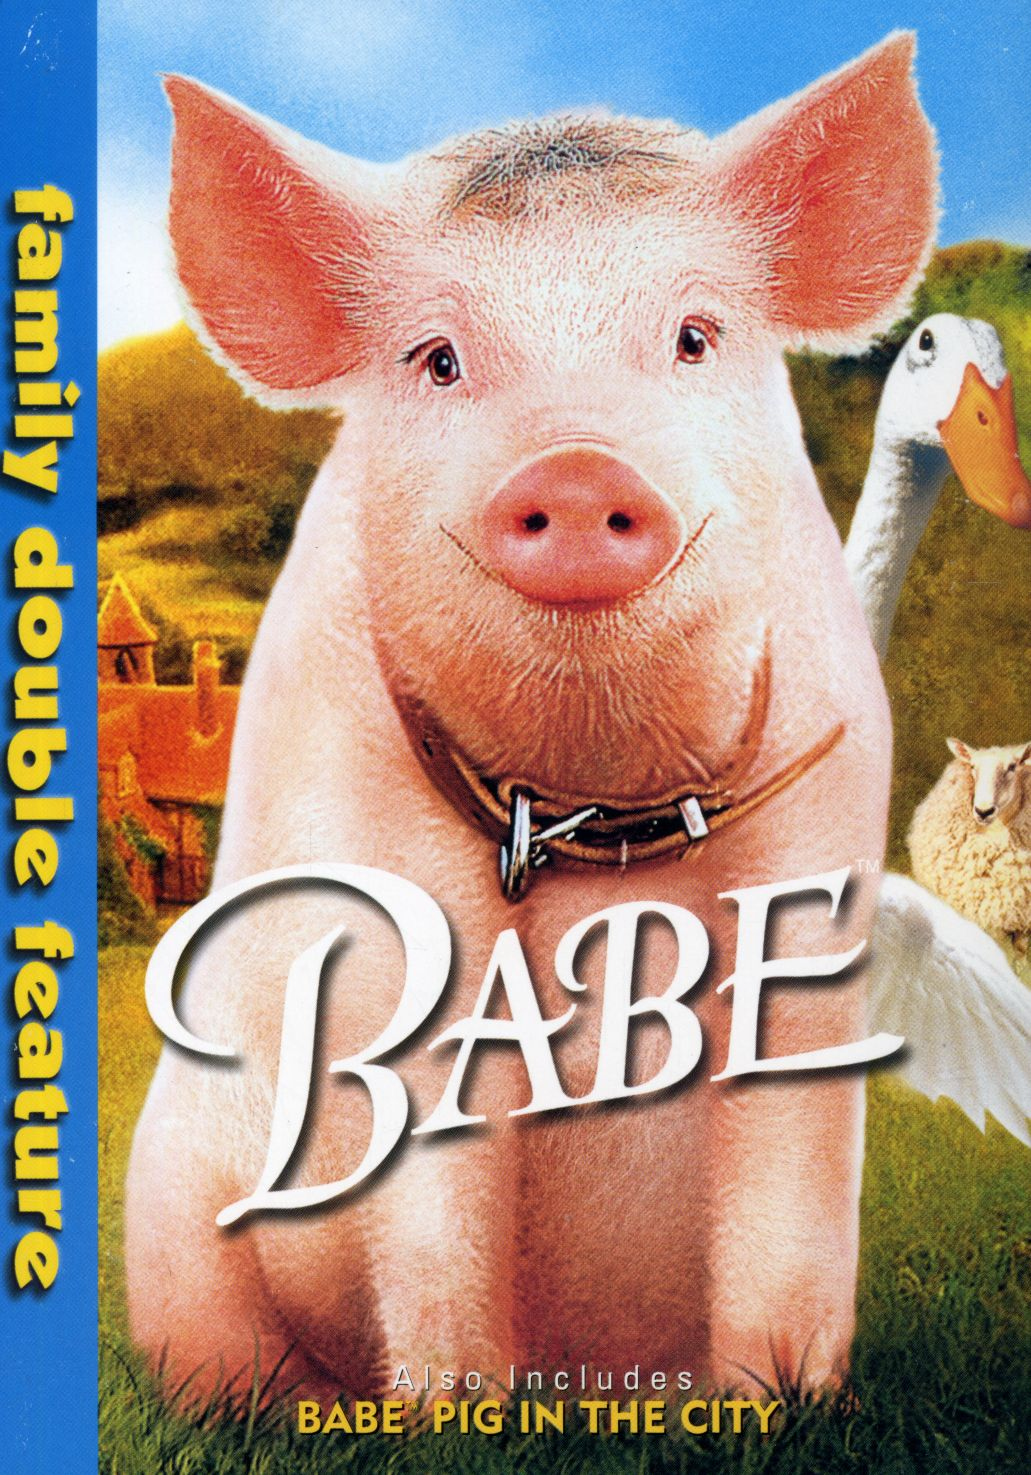 Babe Family Double Feature (DVD)